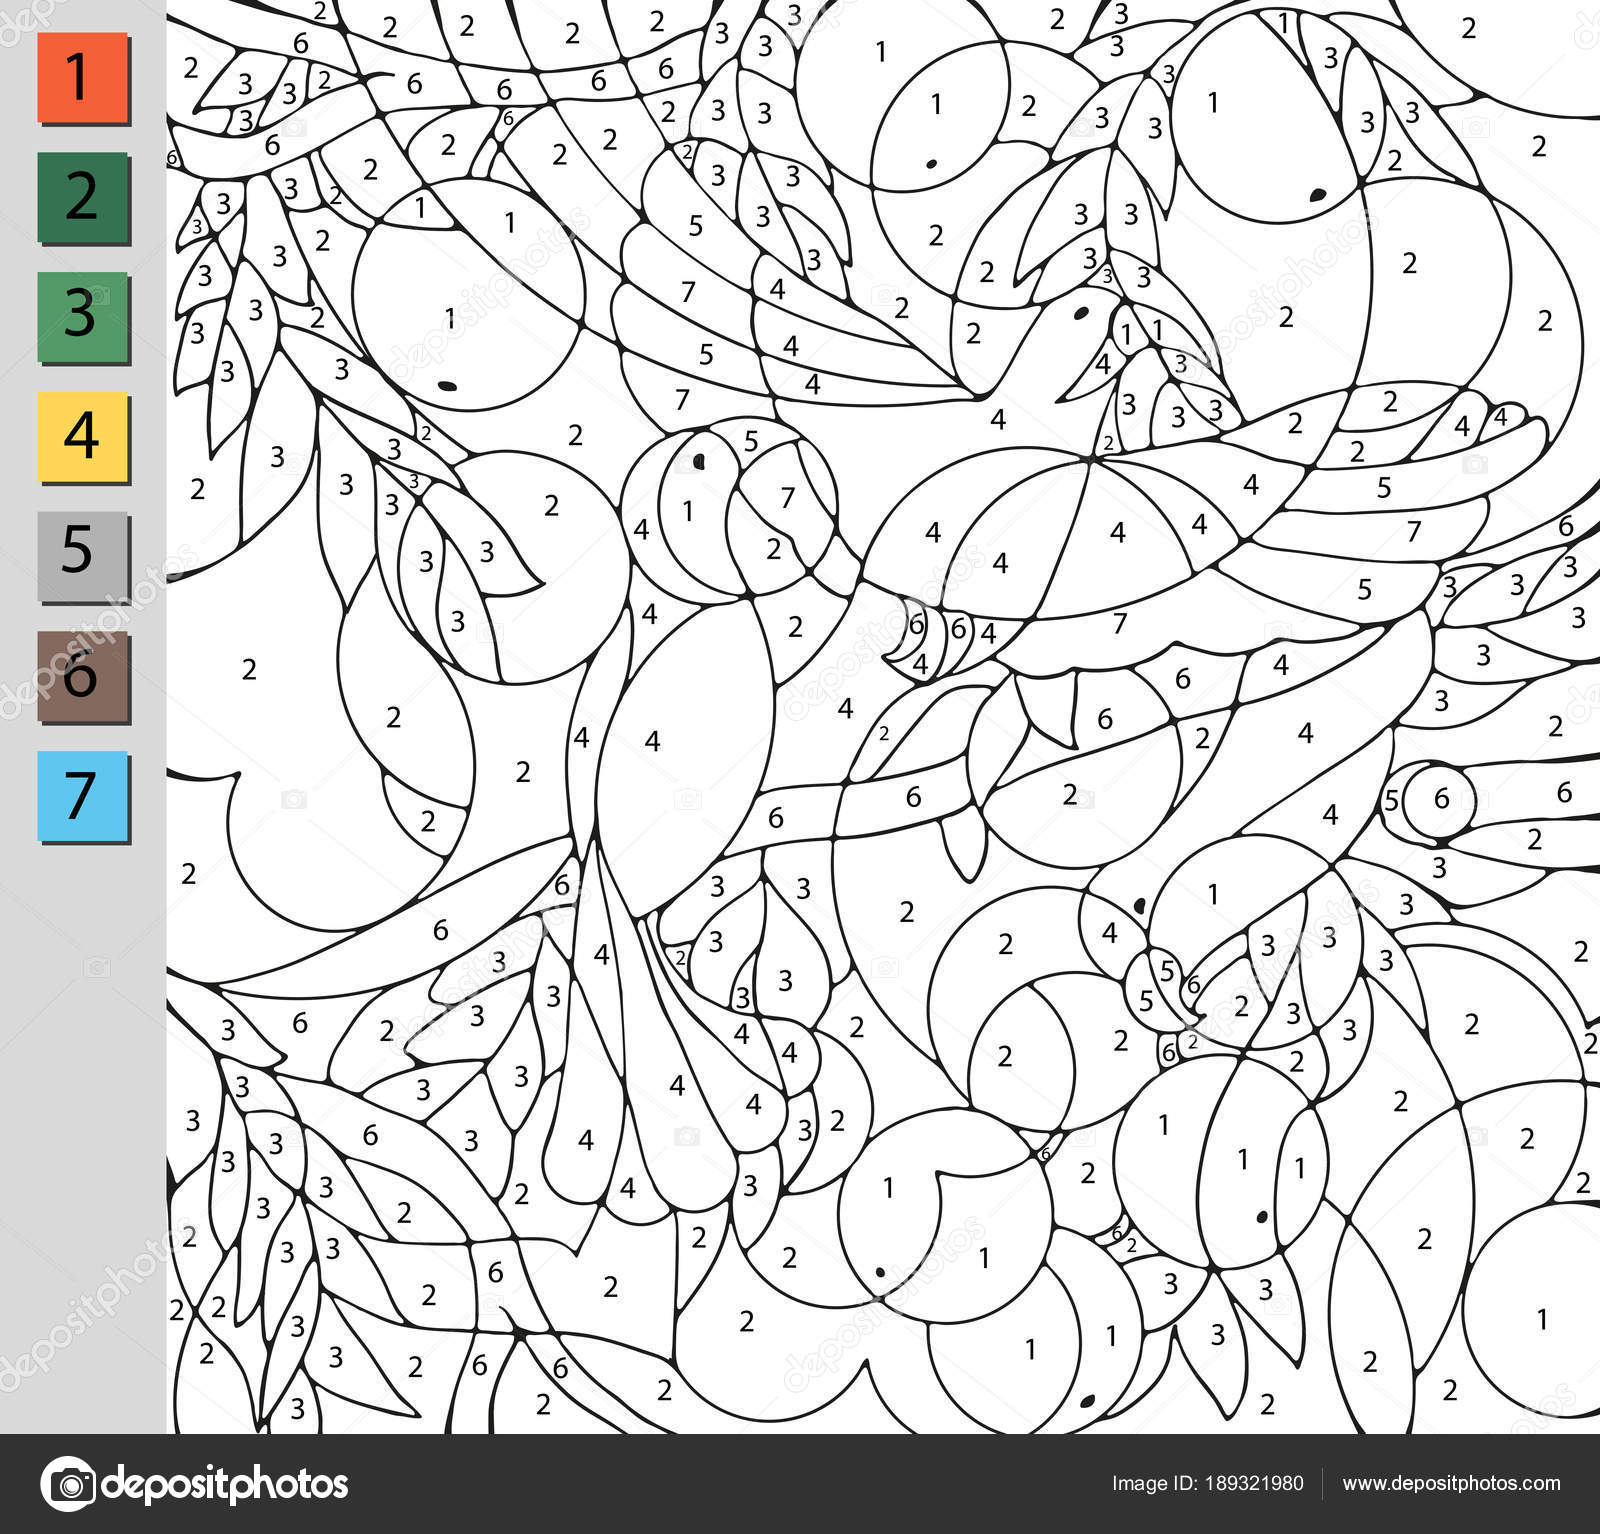 Coloring by number, education game for children. A challenge for ...